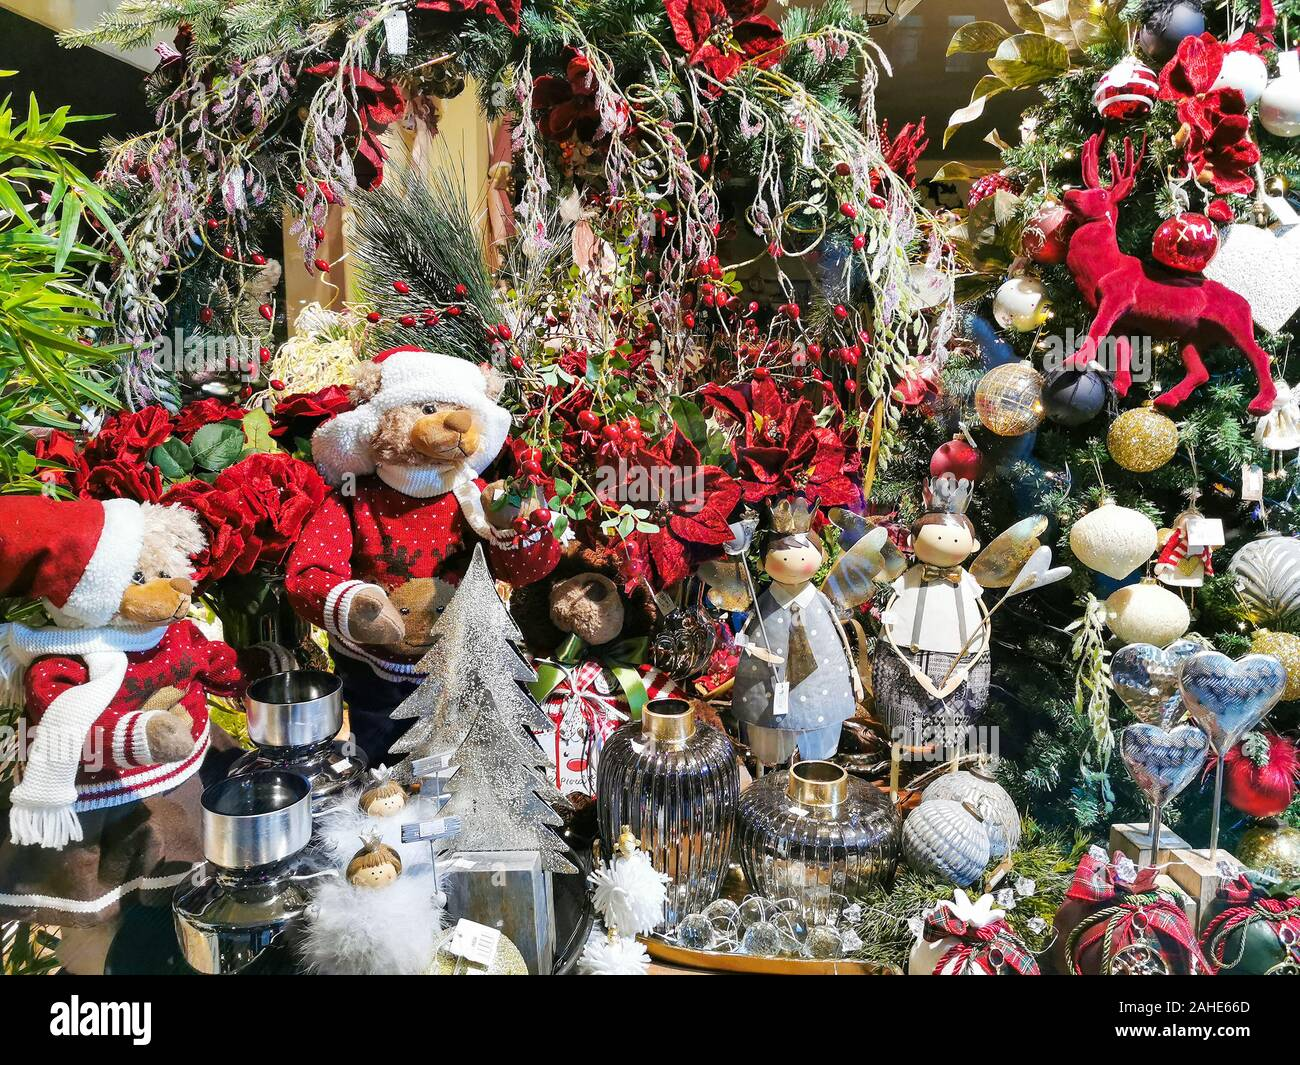 Christmas Tree Decorations Balls And Other Seasonal Art Crafted Products Of Modern Vintage And Traditional Styles Stock Photo Alamy